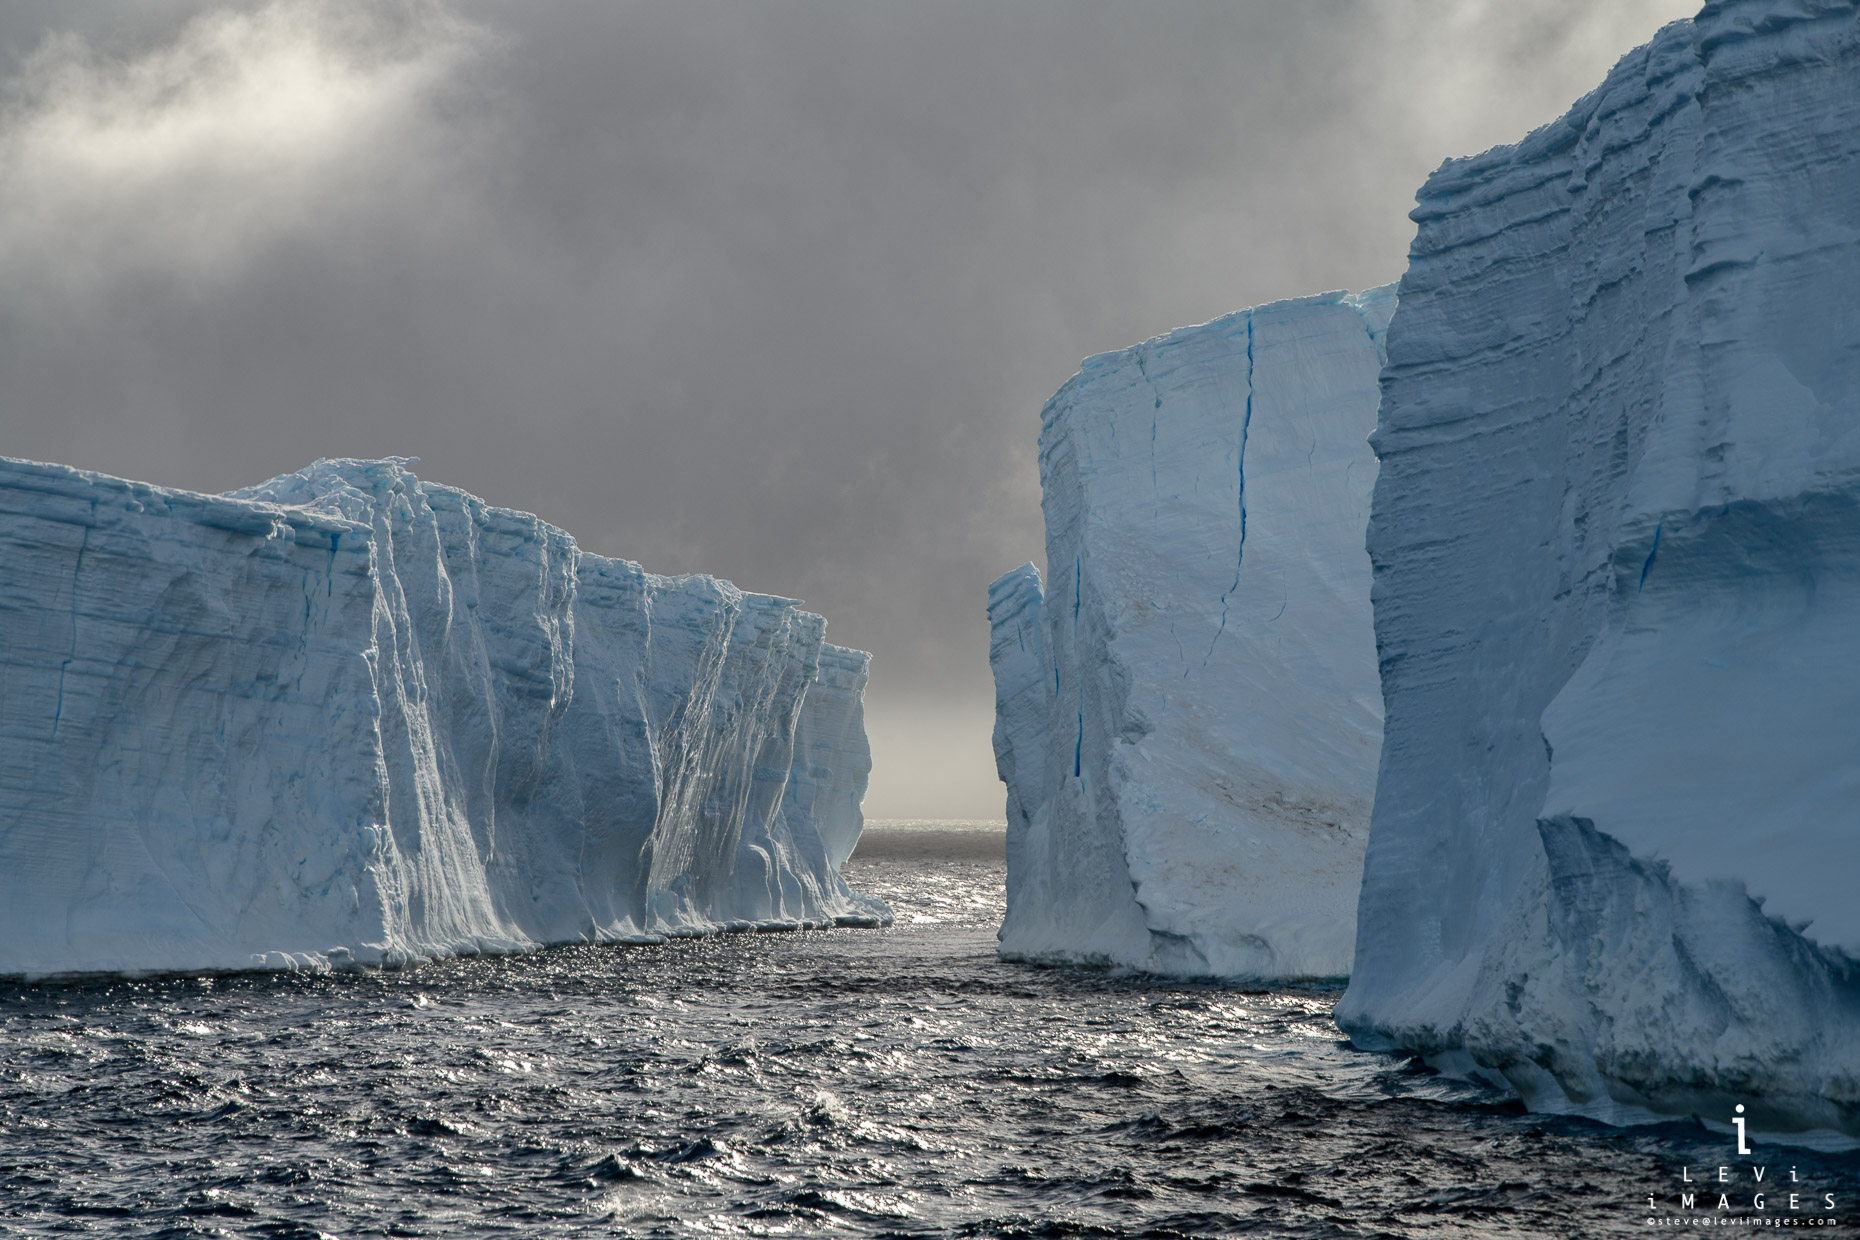 A channel opens between towering icebergs near Brown Bluff, Antarctica